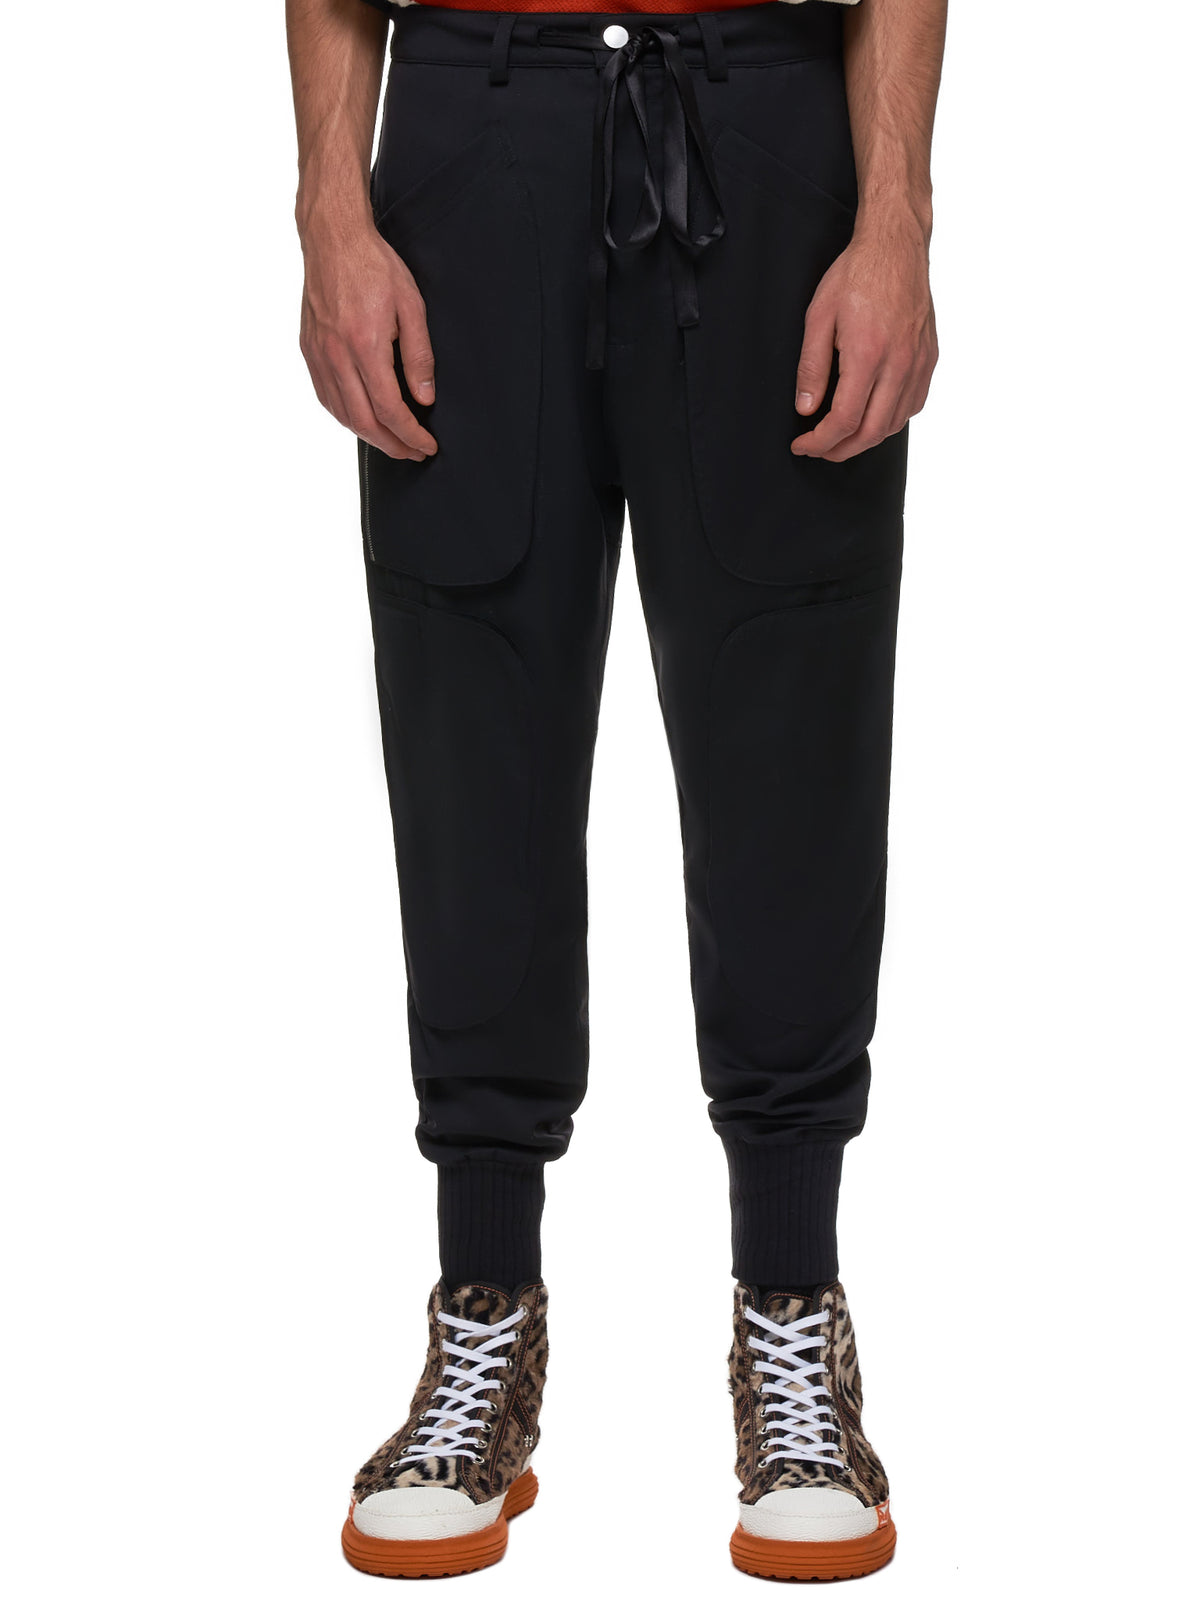 Workman Trousers (WORKMAN-CARGO-PT-WOOL-BLK)